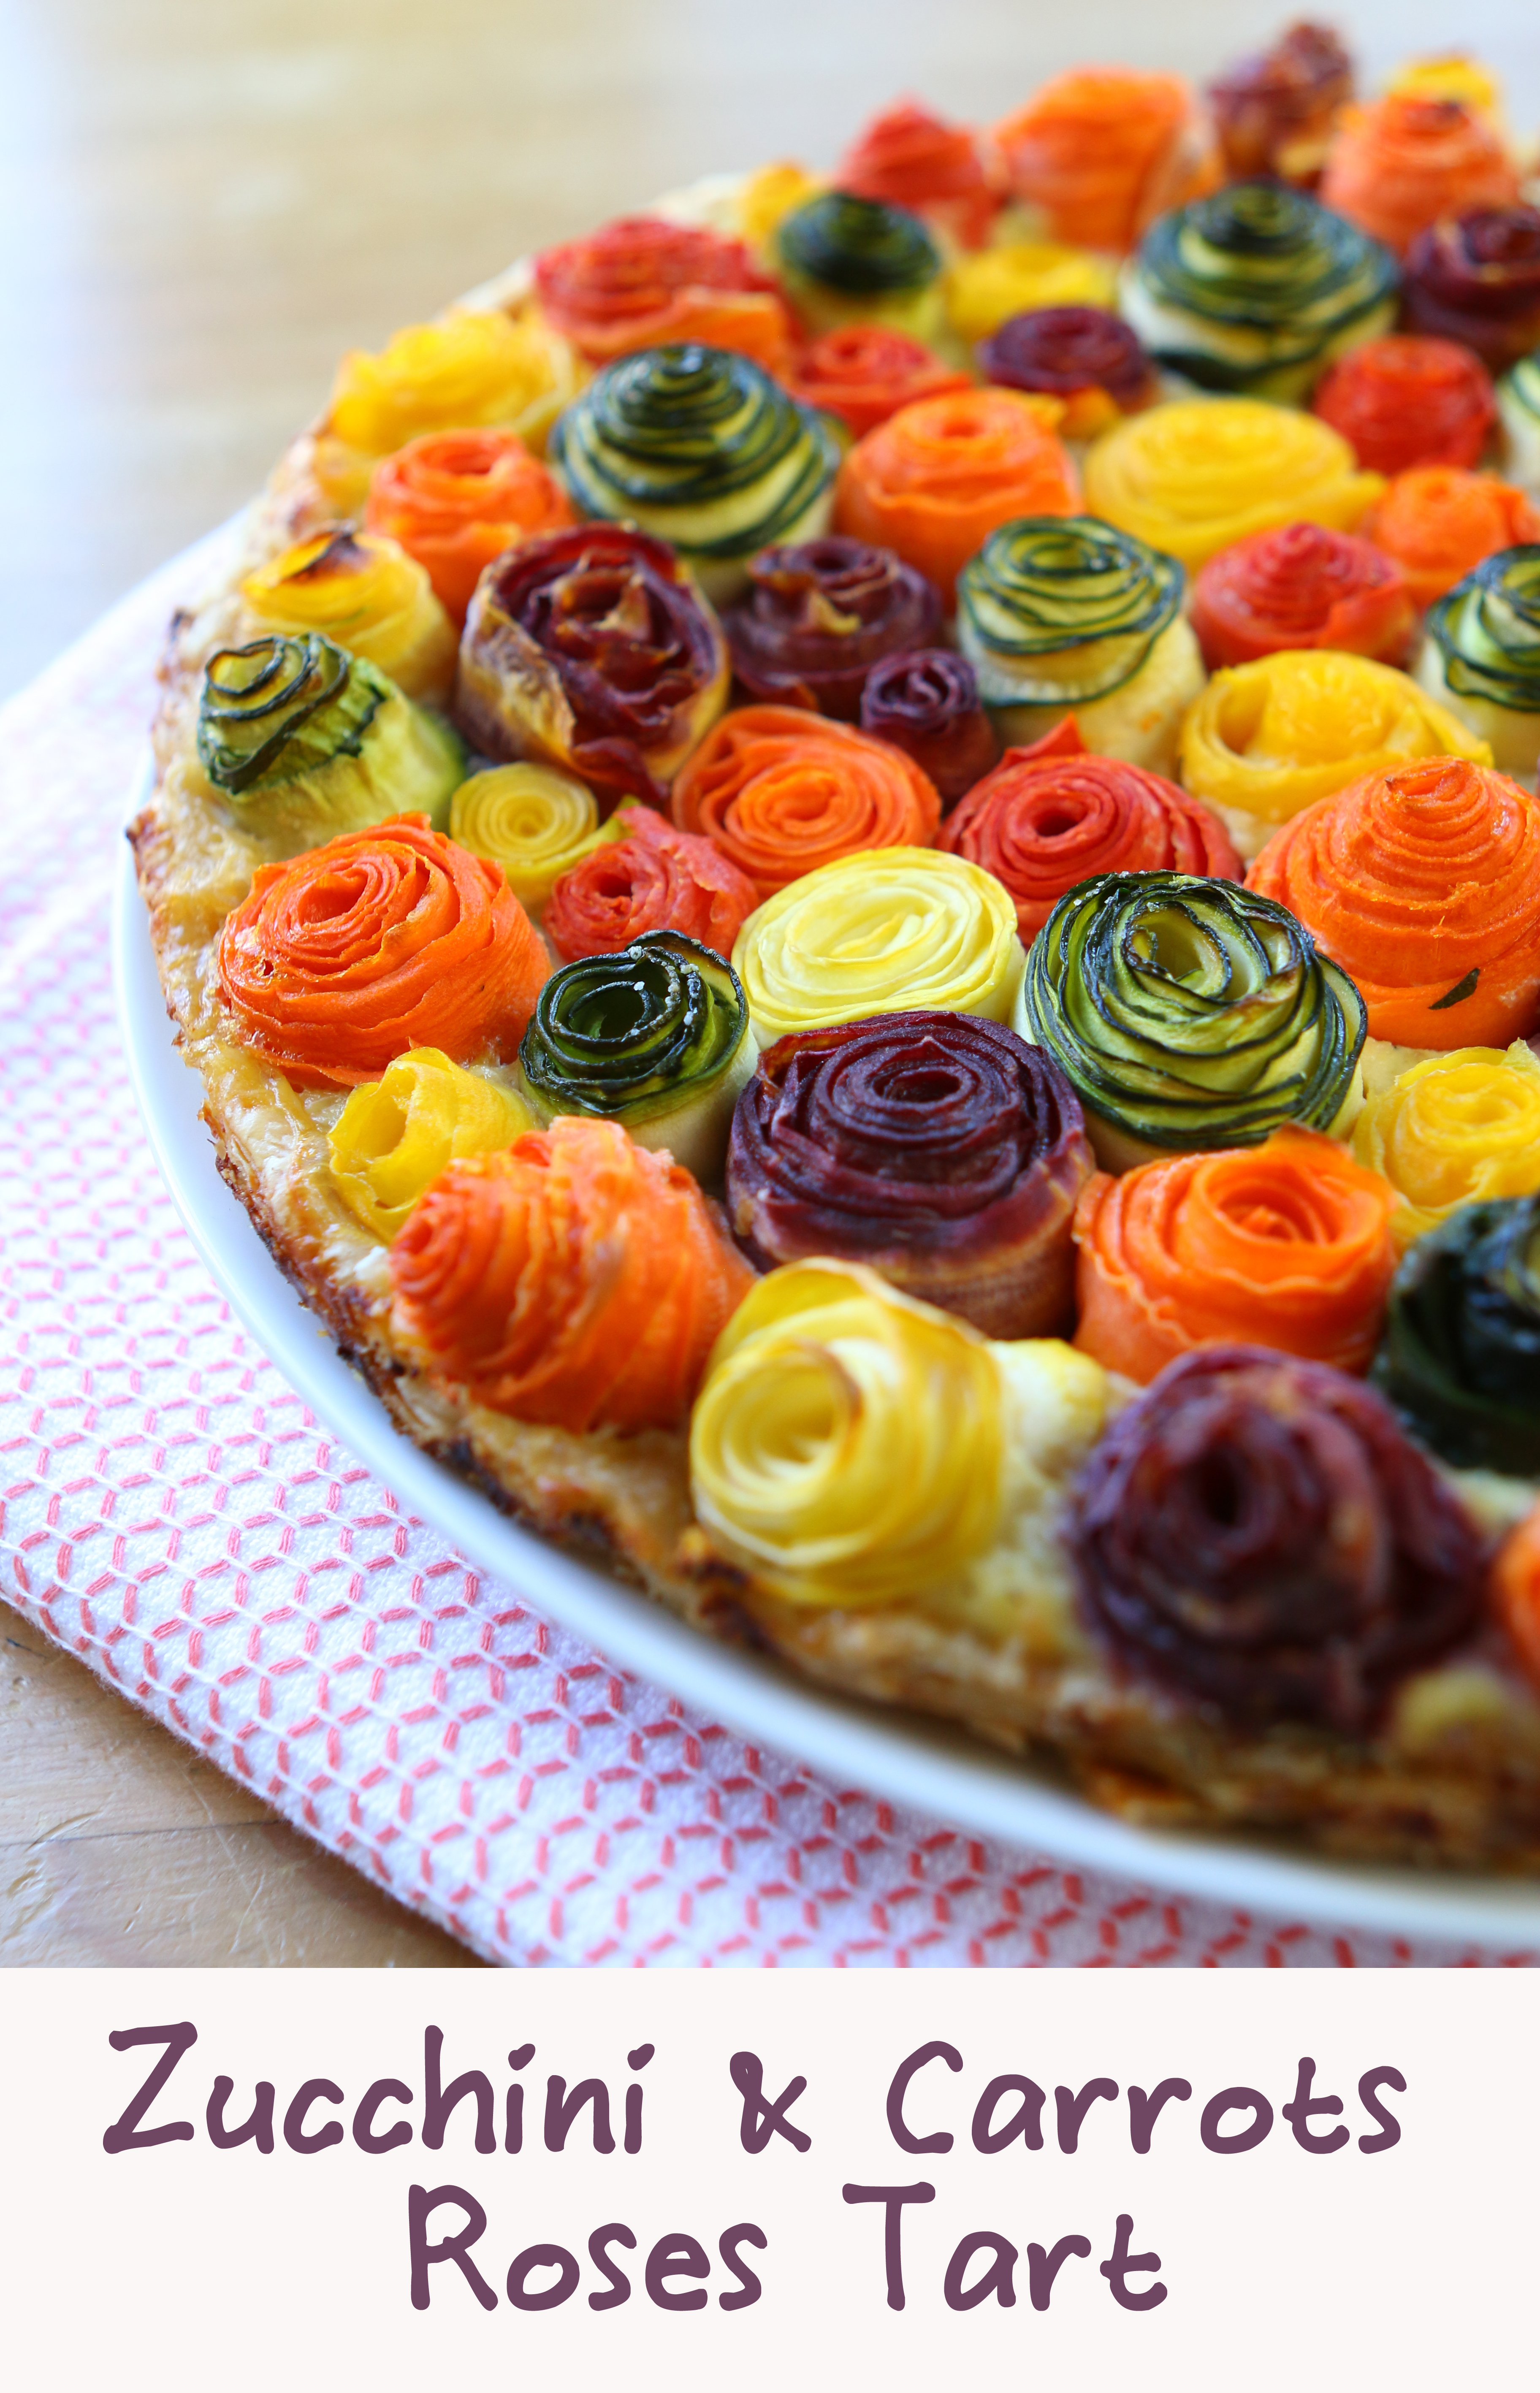 Surprise your family with this stunning beautiful rose tart! Veggies and cheesy base. It's not only beautiful but super yummy!